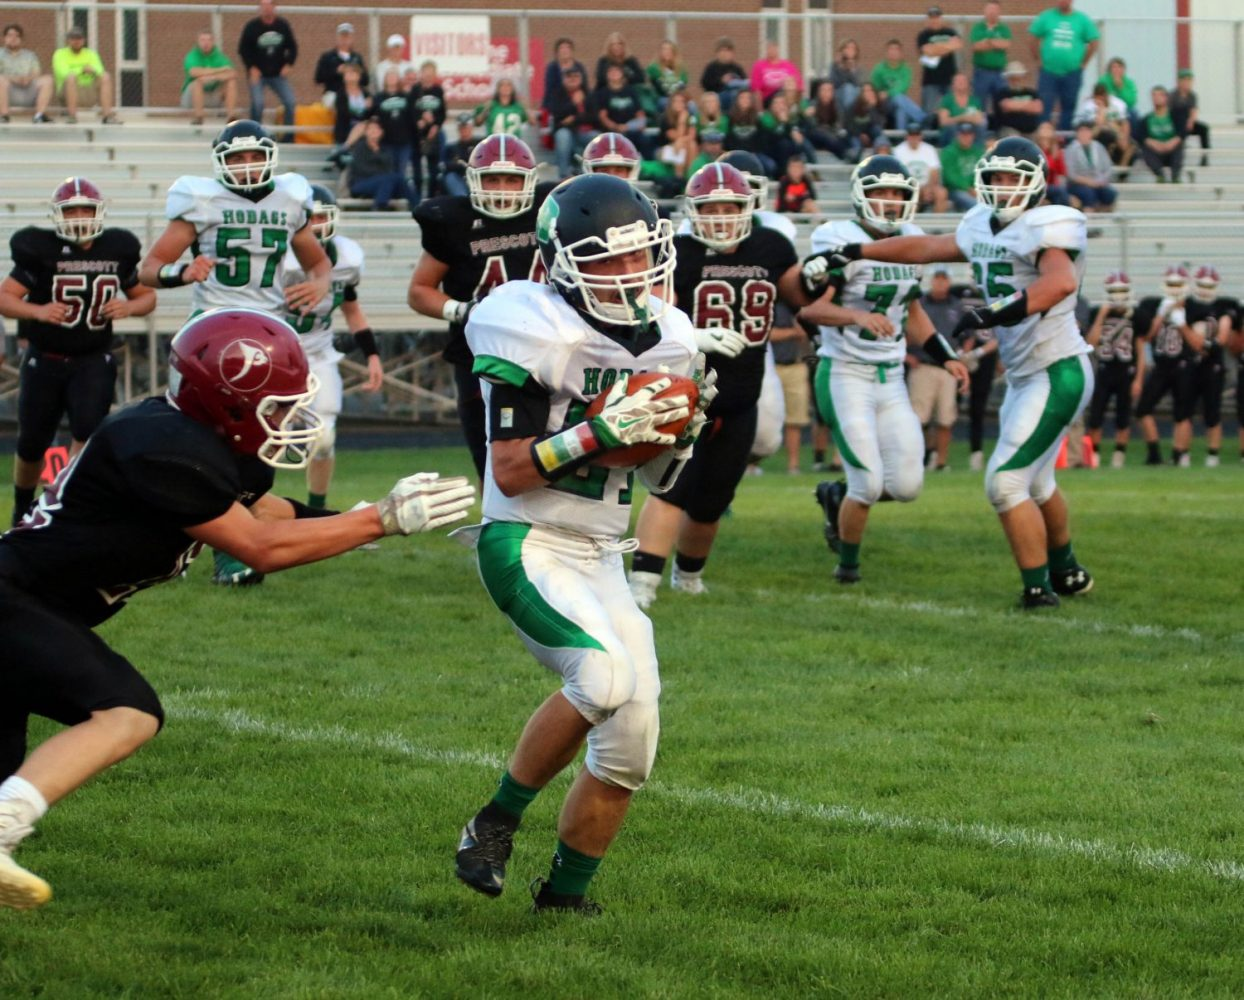 In front at right, the Hodags' Kenny Baumgardner (21) catches a pass in Friday's season openerat Prescott.